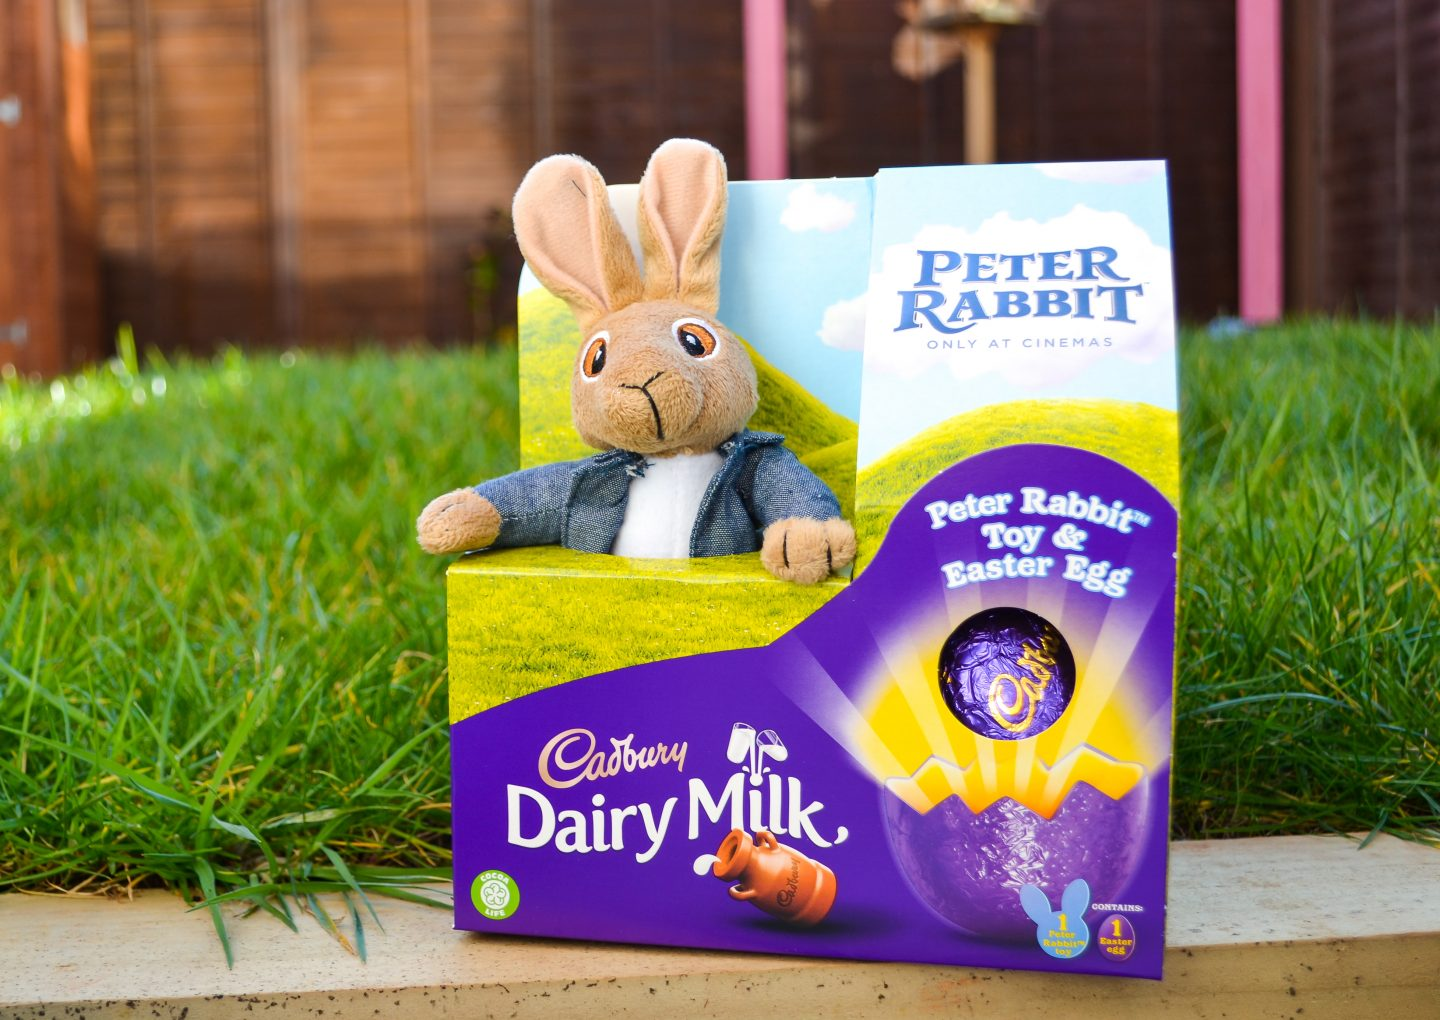 Cadbury Peter Rabbit easter egg